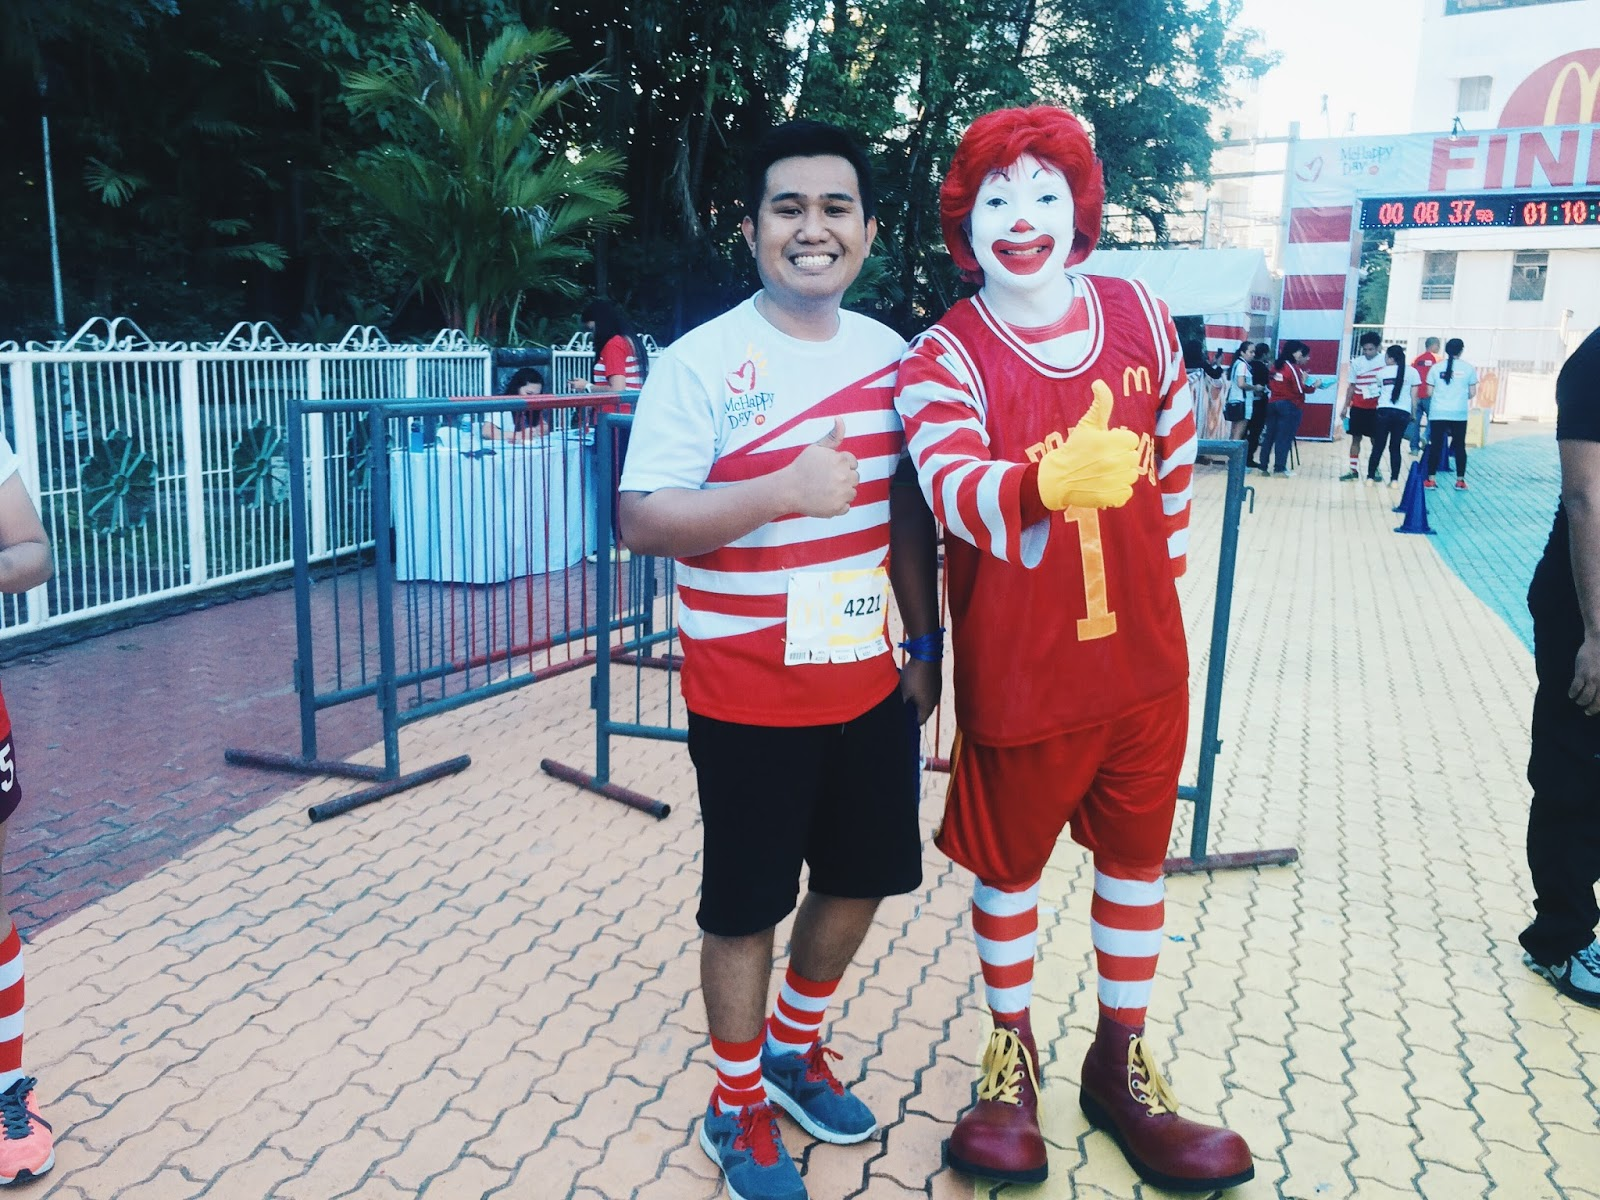 McHappy Stripes Run in Davao